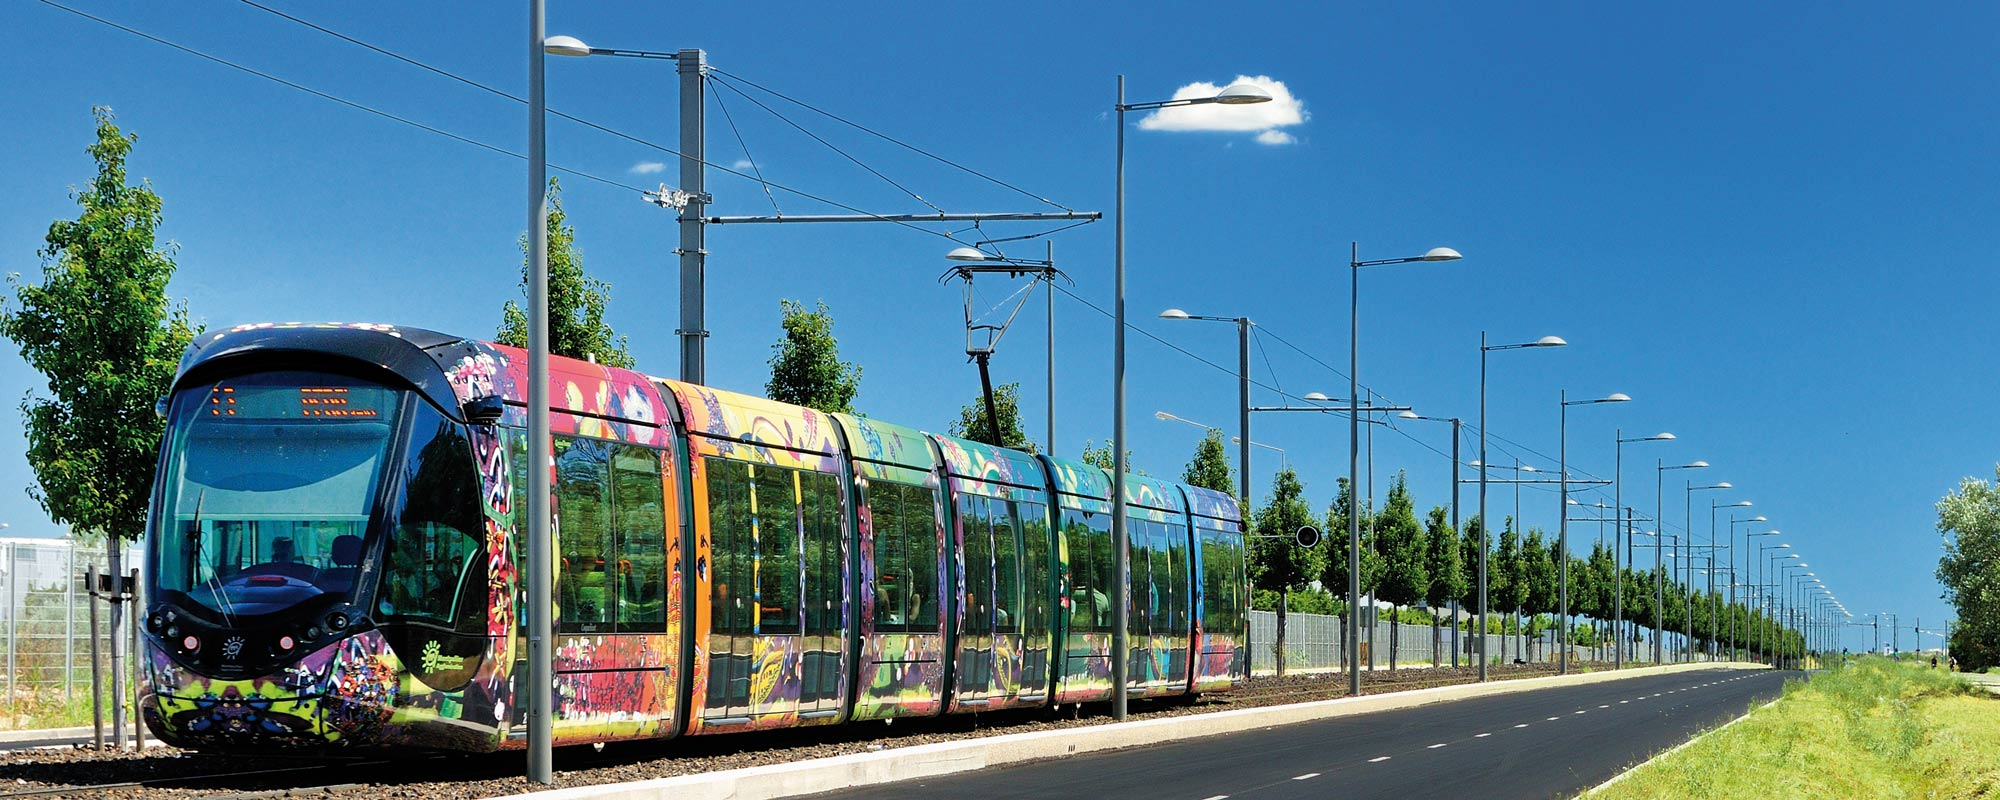 D_Montpellier_Tramway